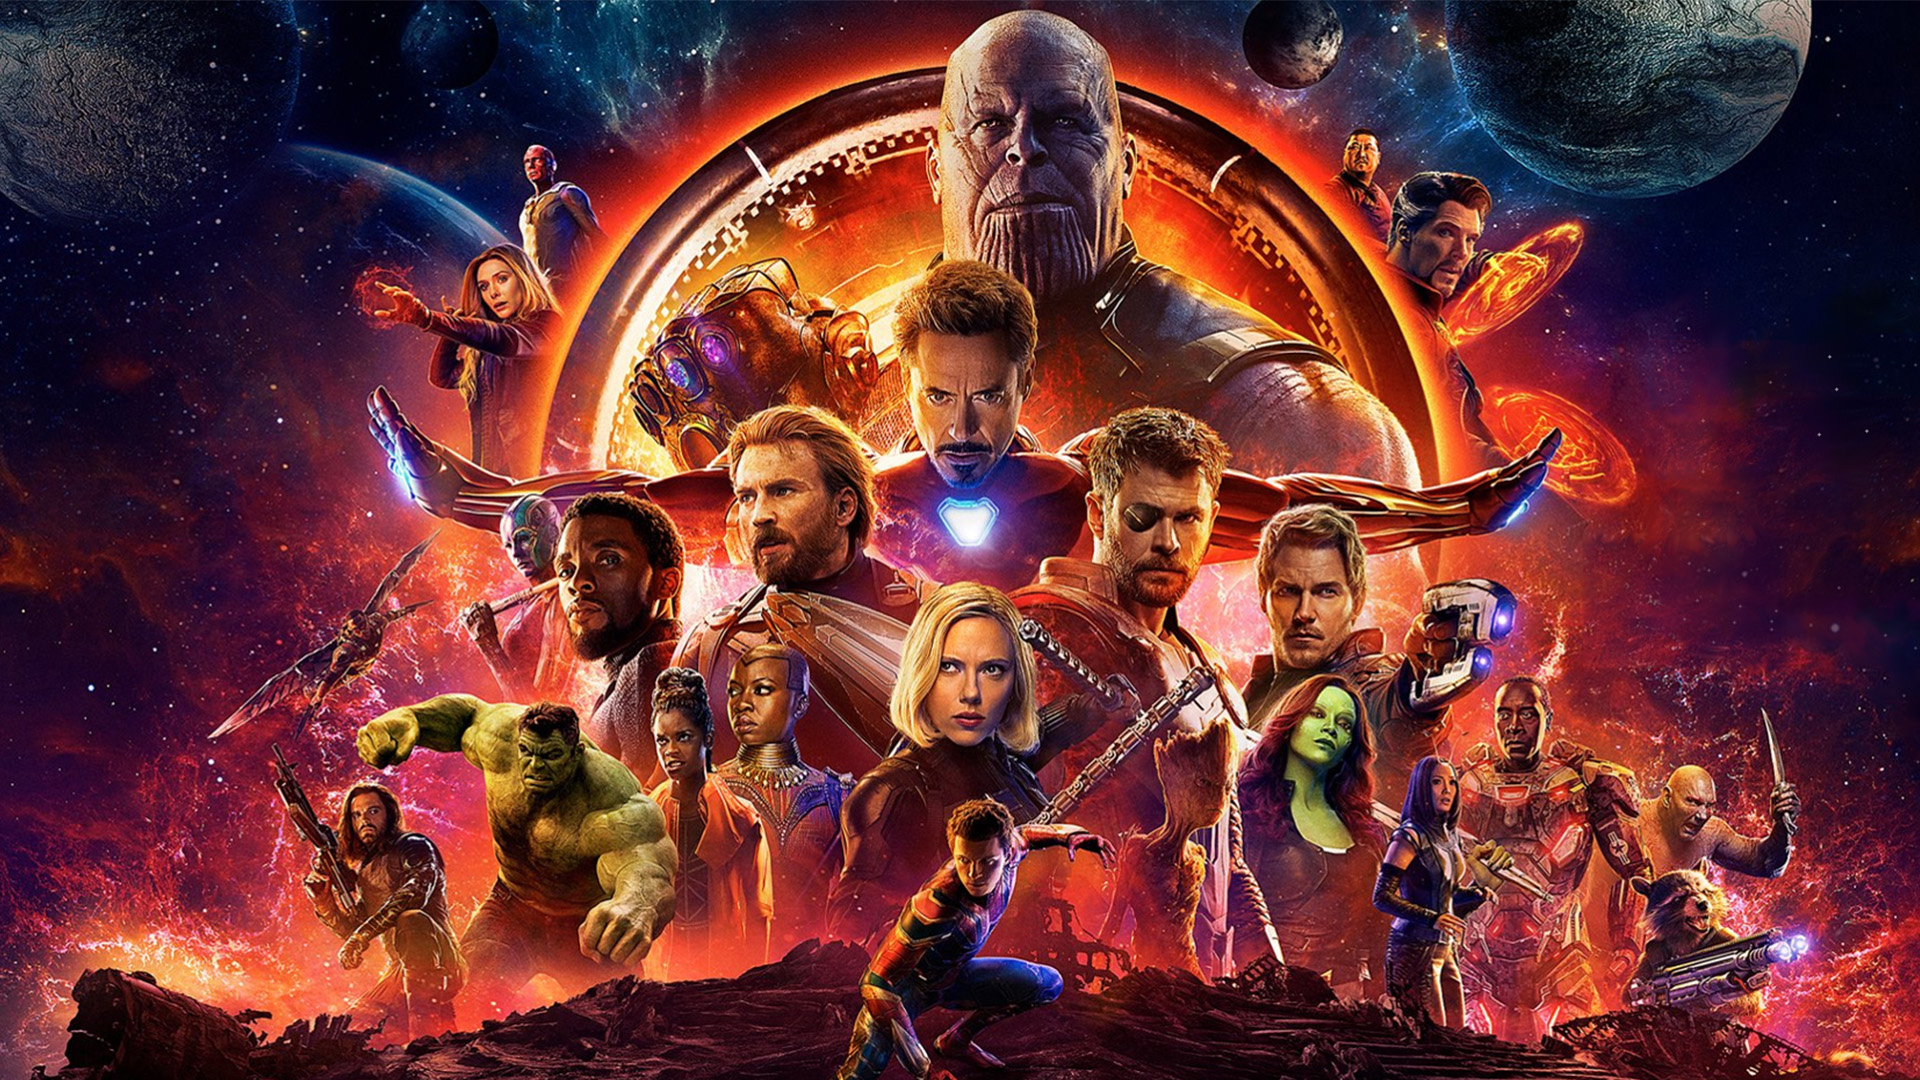 Avengers Infinity War Posters Highlight 5 Teams Led By Iron Man Others Pursue News